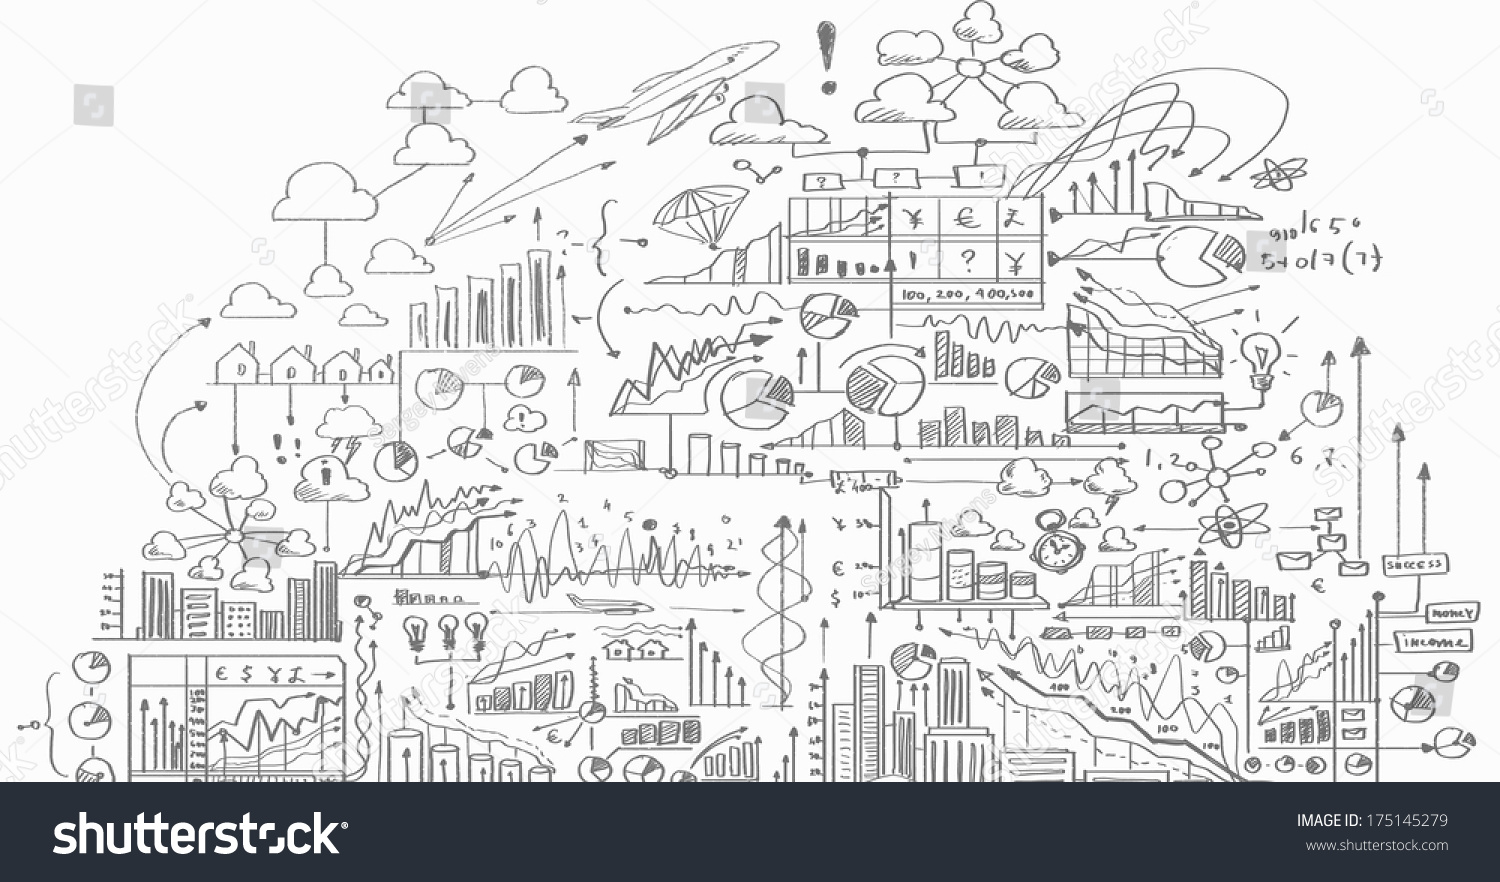 Background image with business sketch and strategy drawings